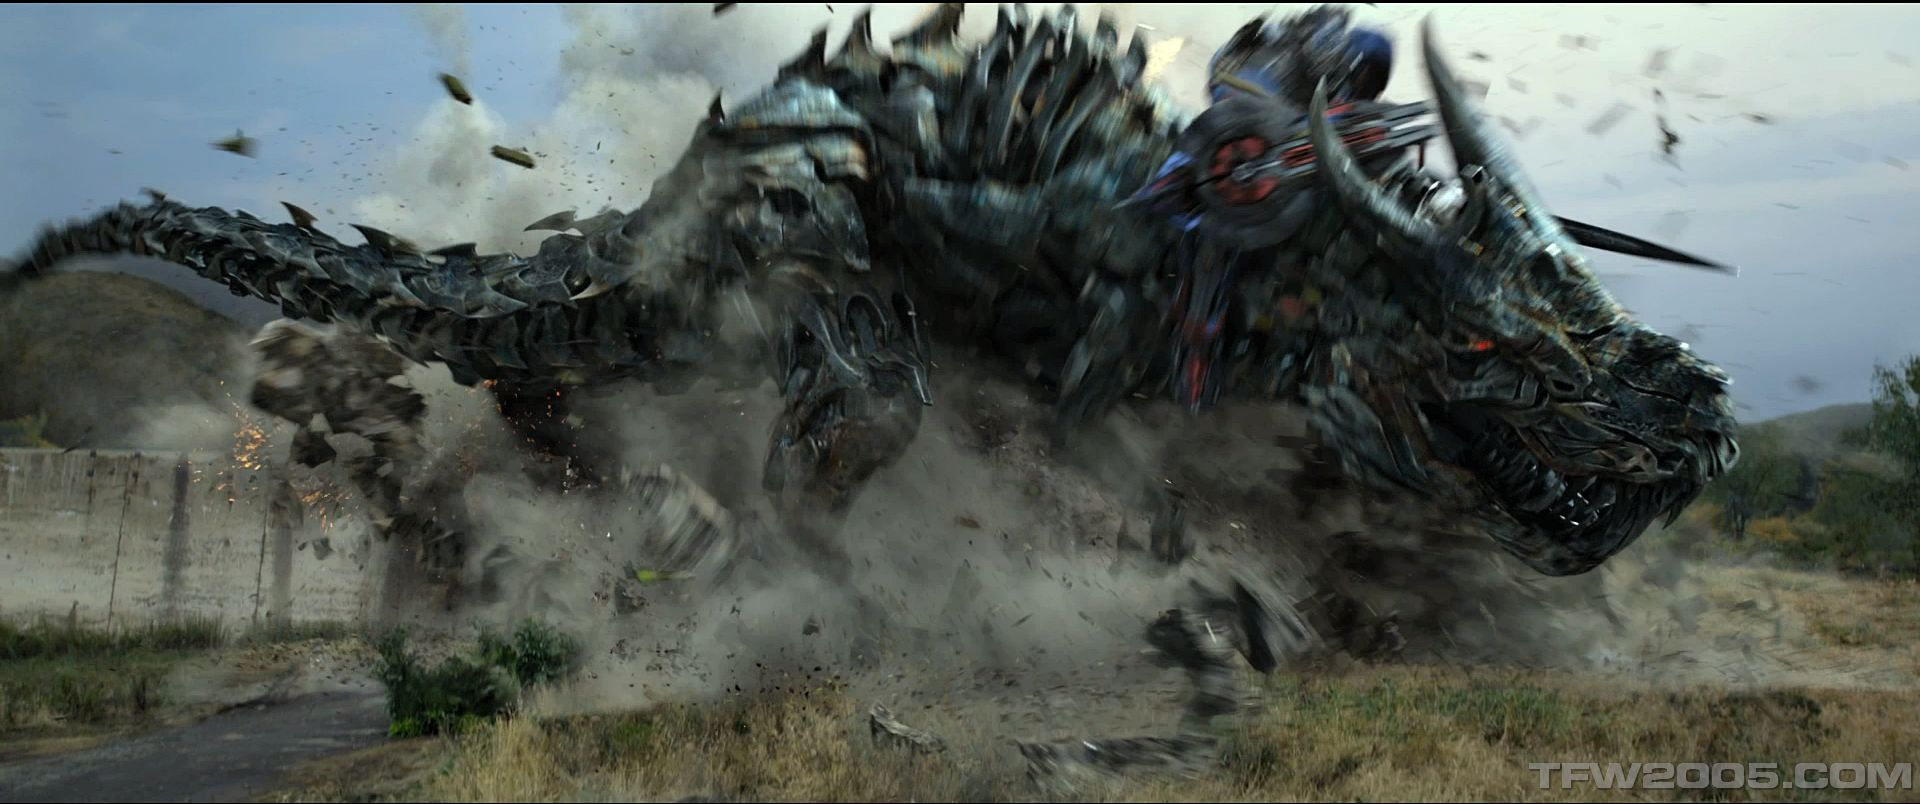 Transformers Age of Extinction Dinobots | Transformers 4 ...